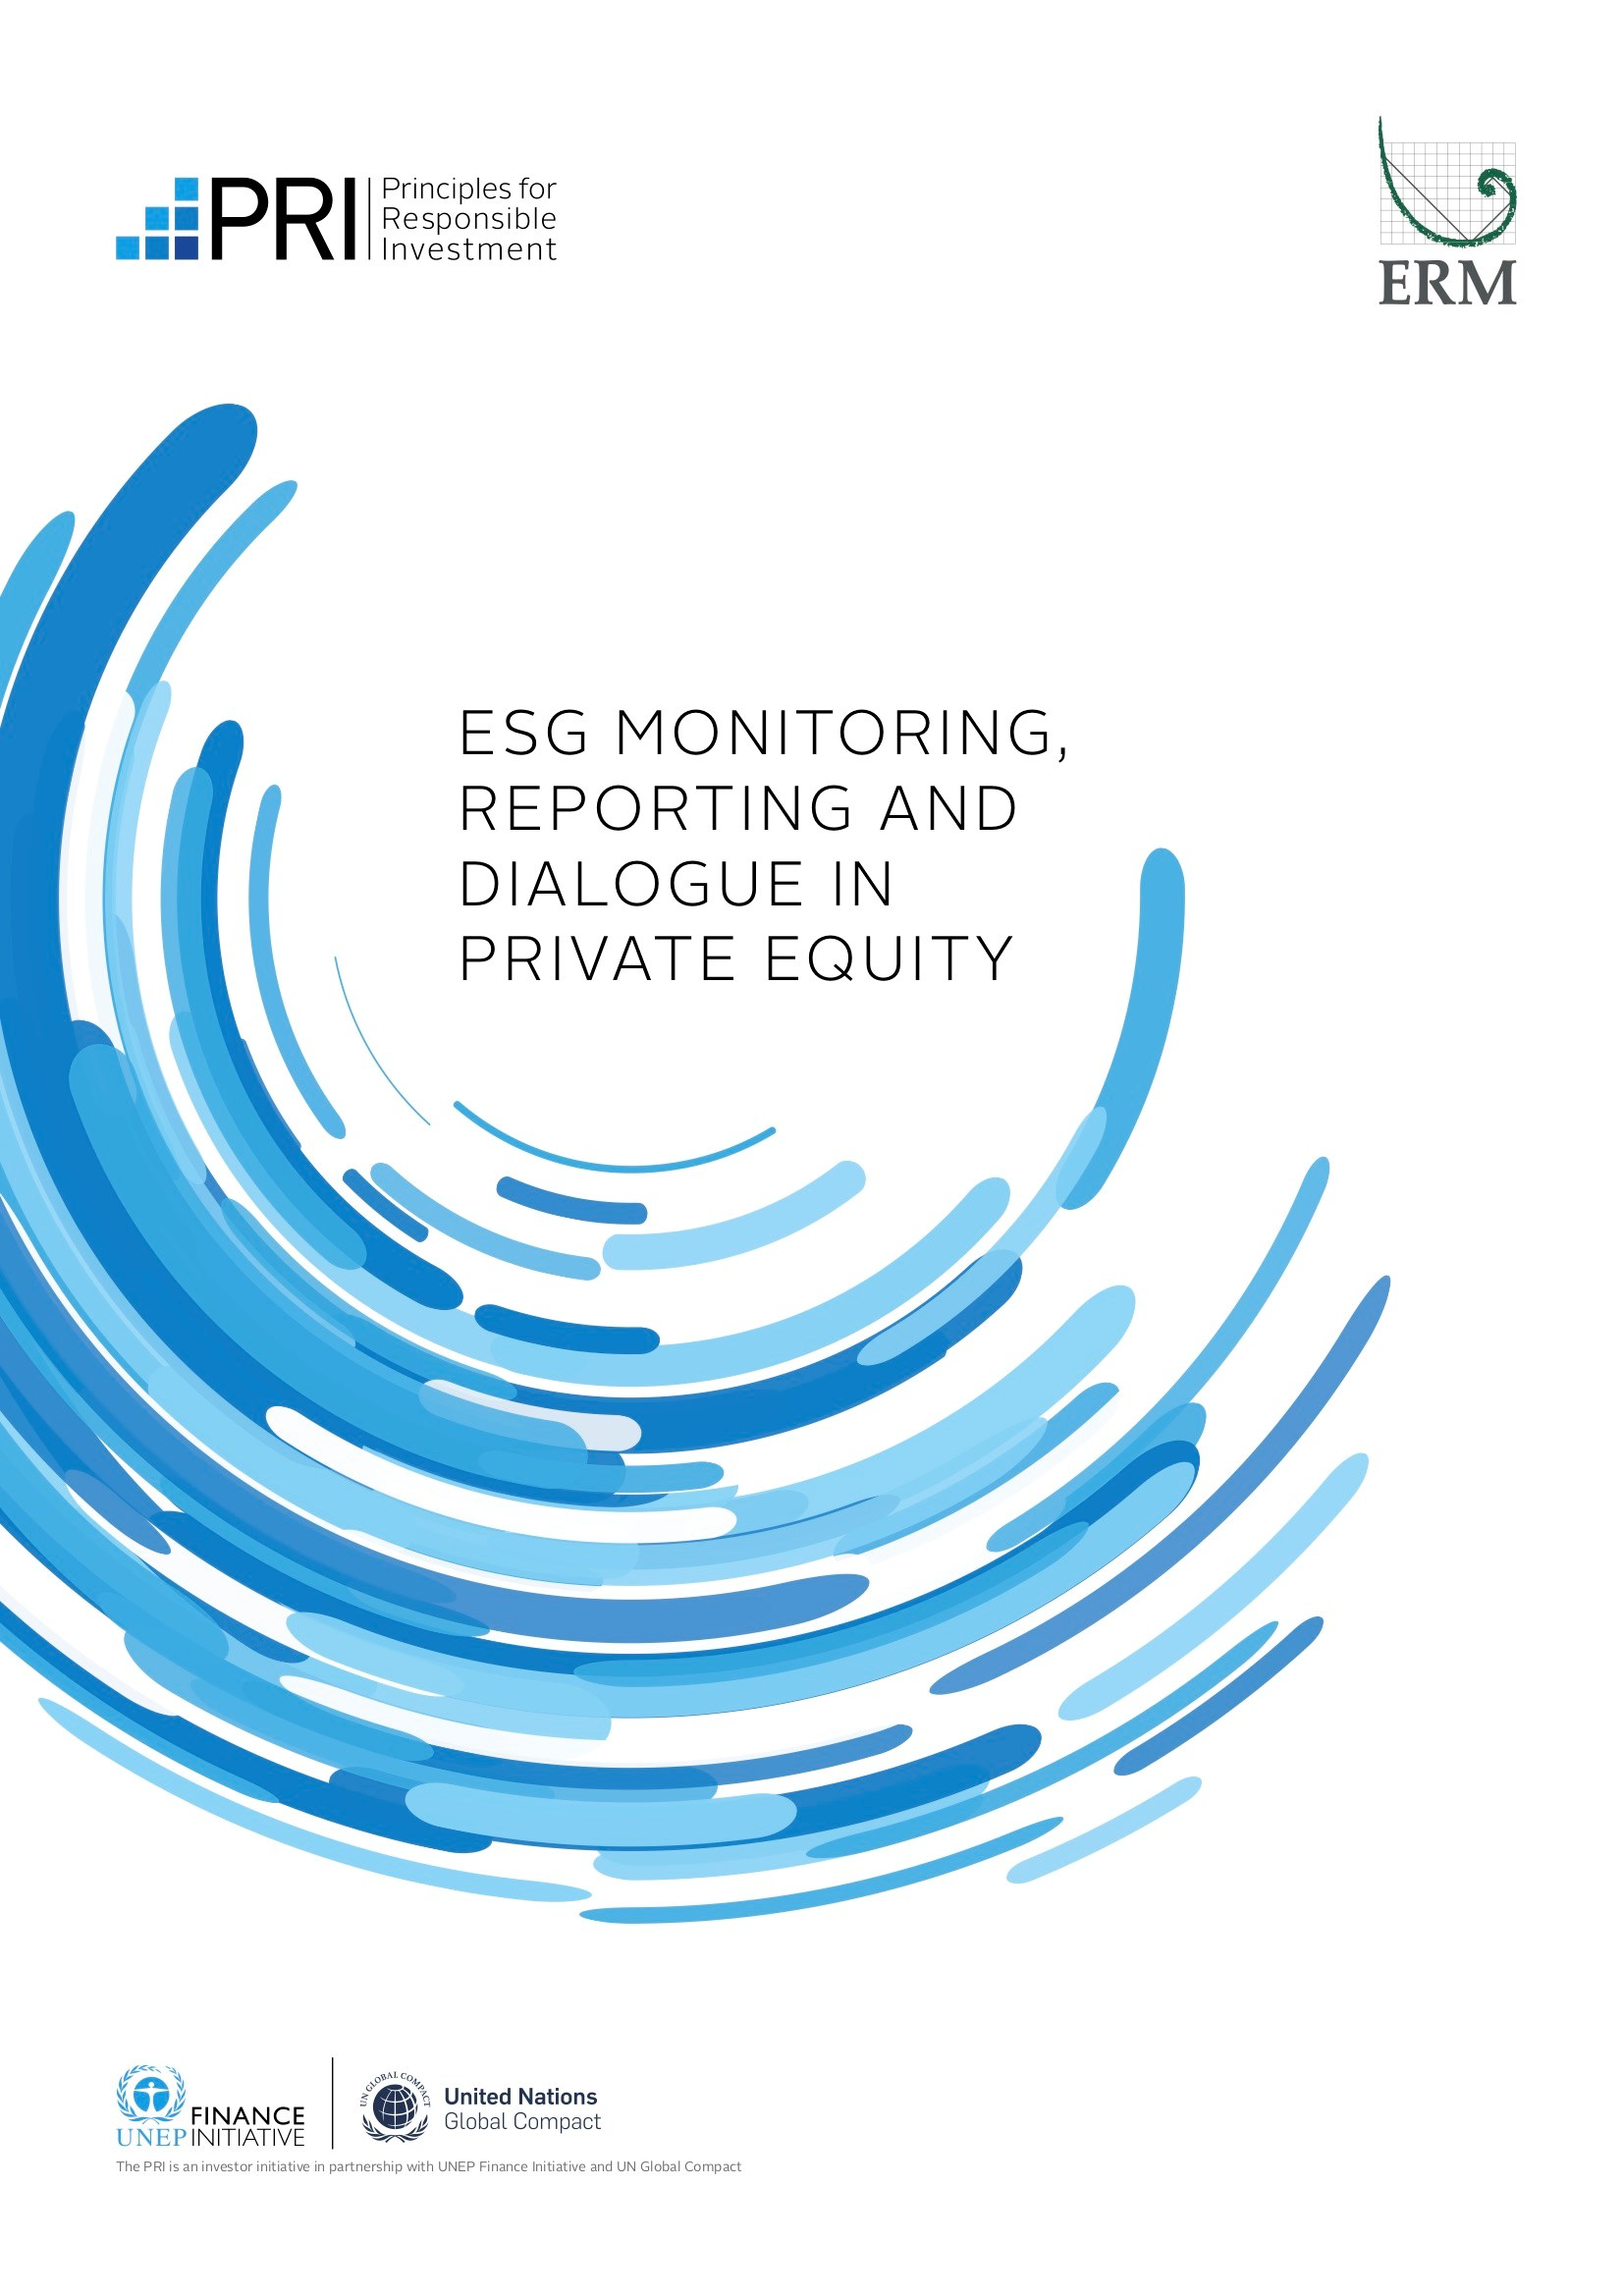 PRI and ERM launch guidance on ESG monitoring, reporting and dialogue in private equity